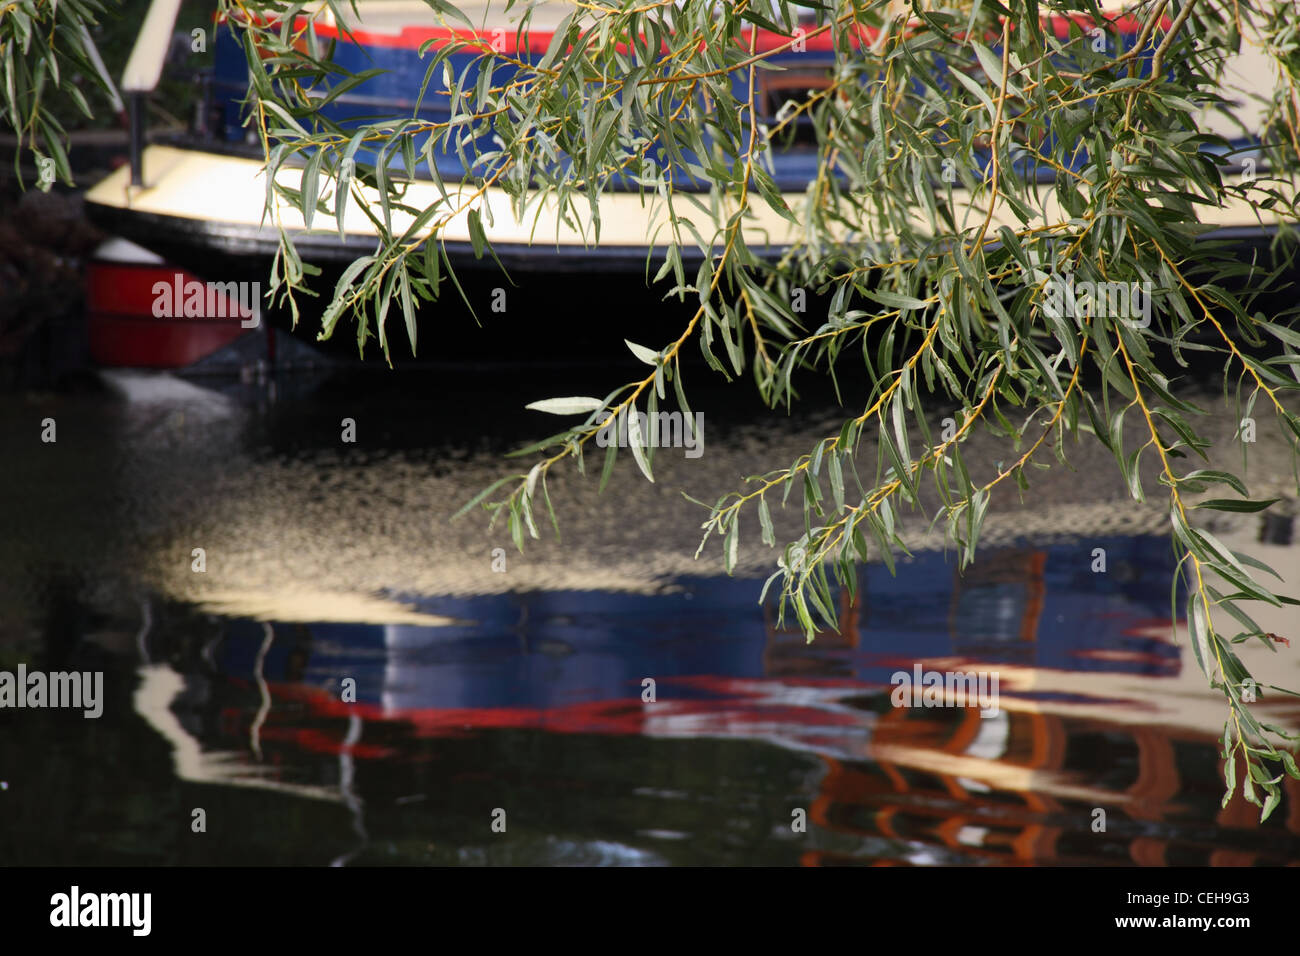 a-narrowboat-reflected-in-the-waters-of-